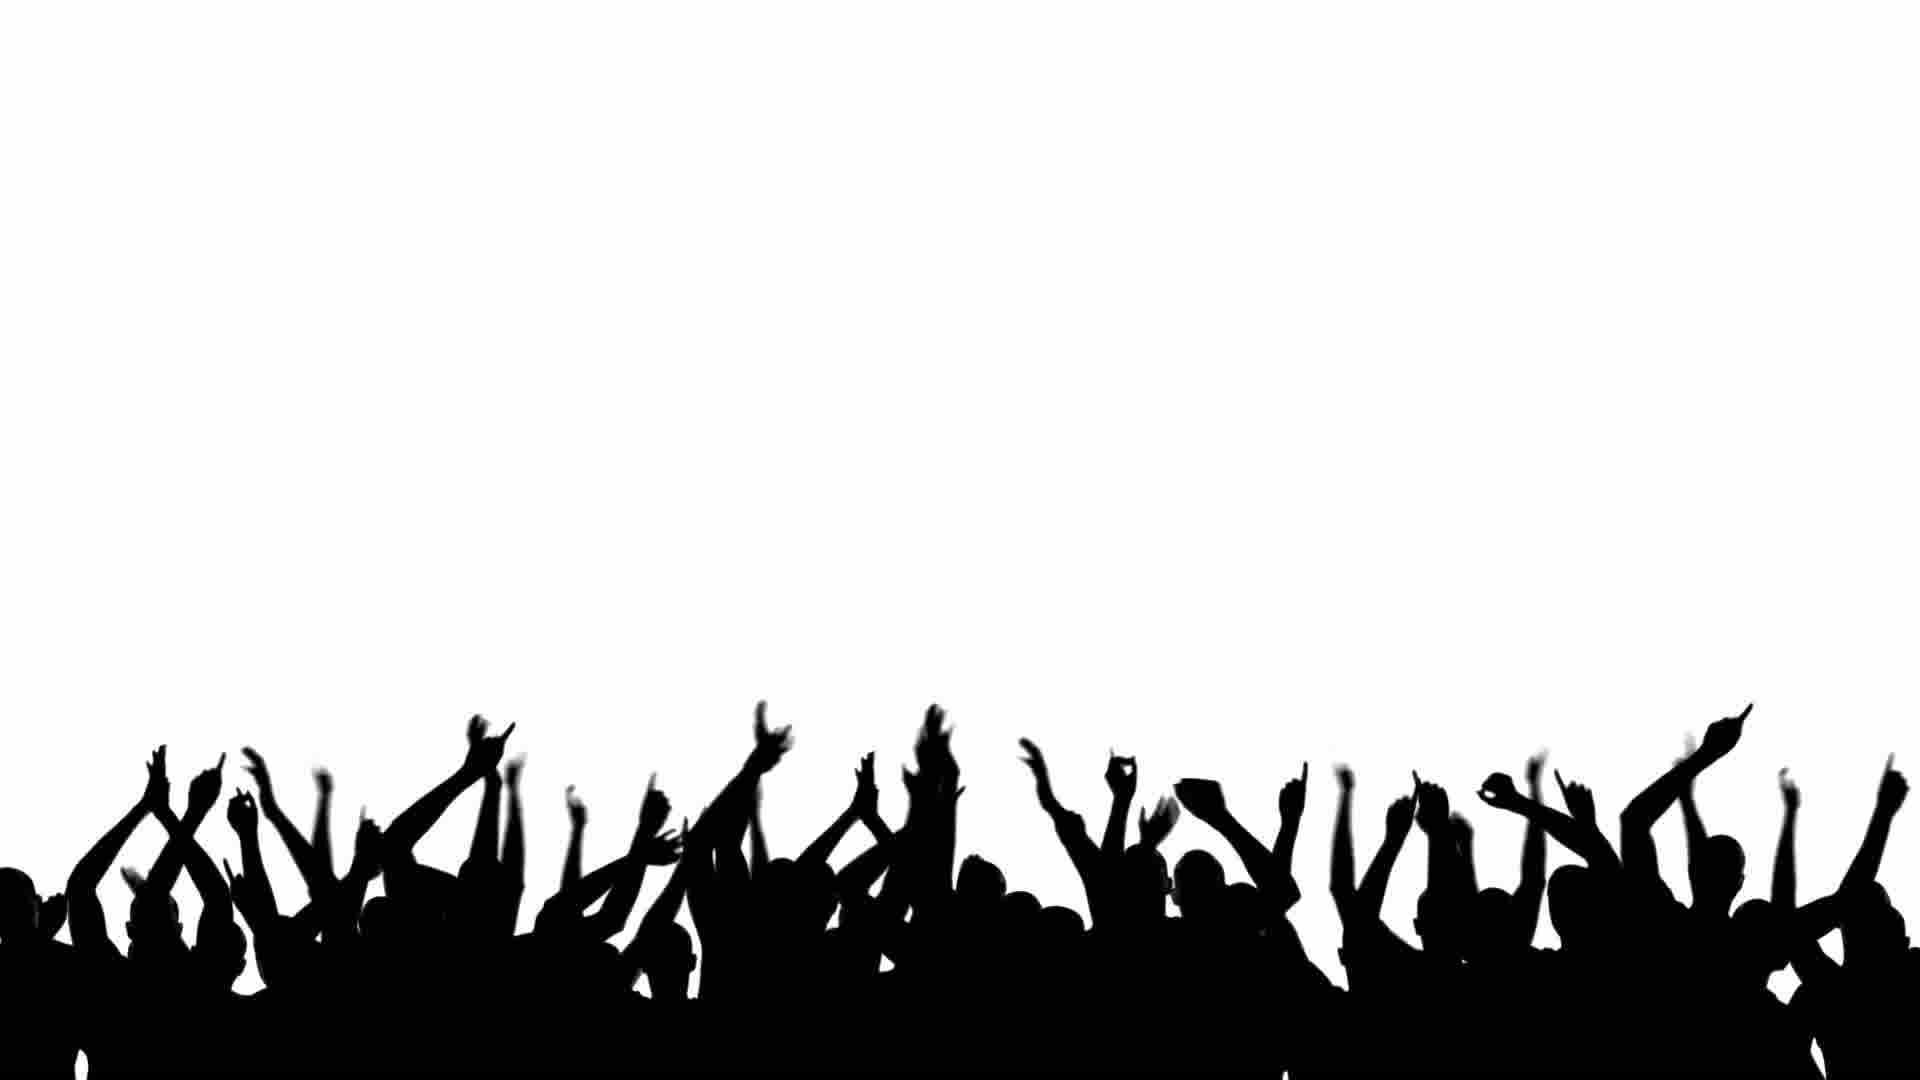 party silhouette party crowd silhouette royalty free video and stock footage party silhouette 1 3